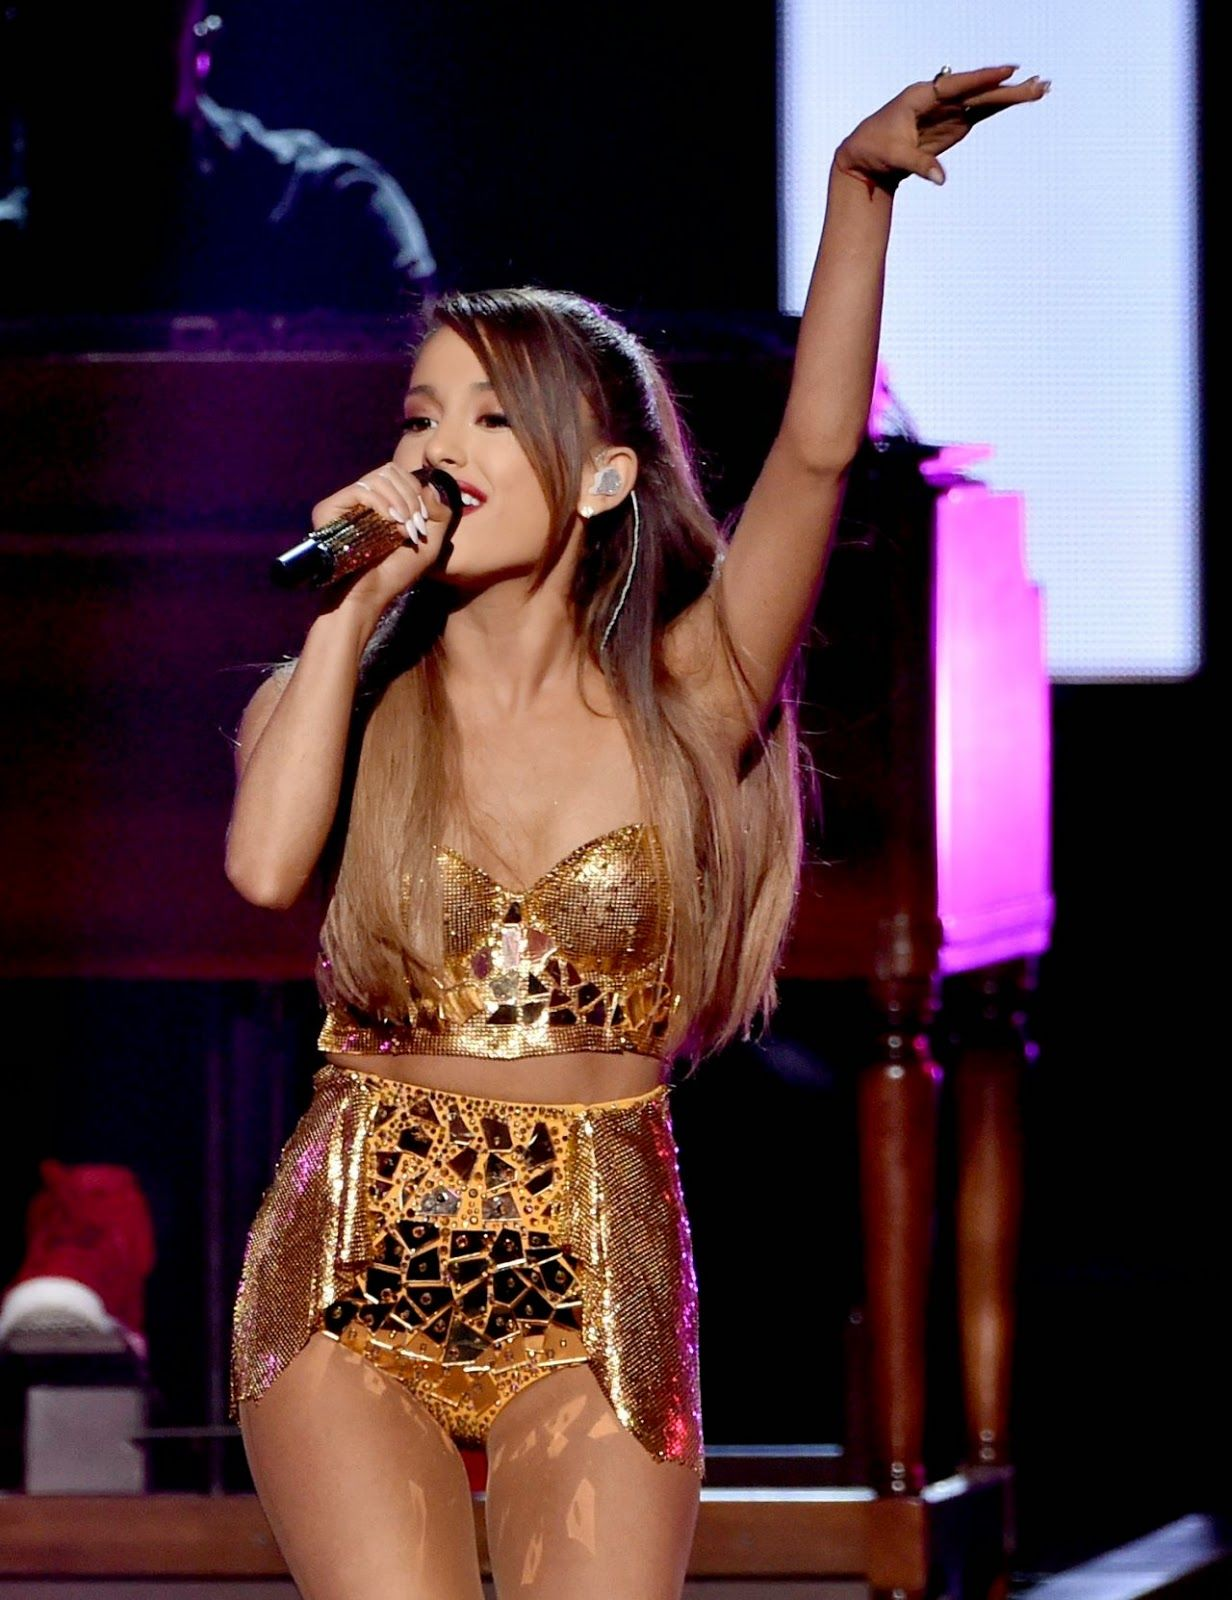 Ariana Grande Performs In A Leather Mini Skirt